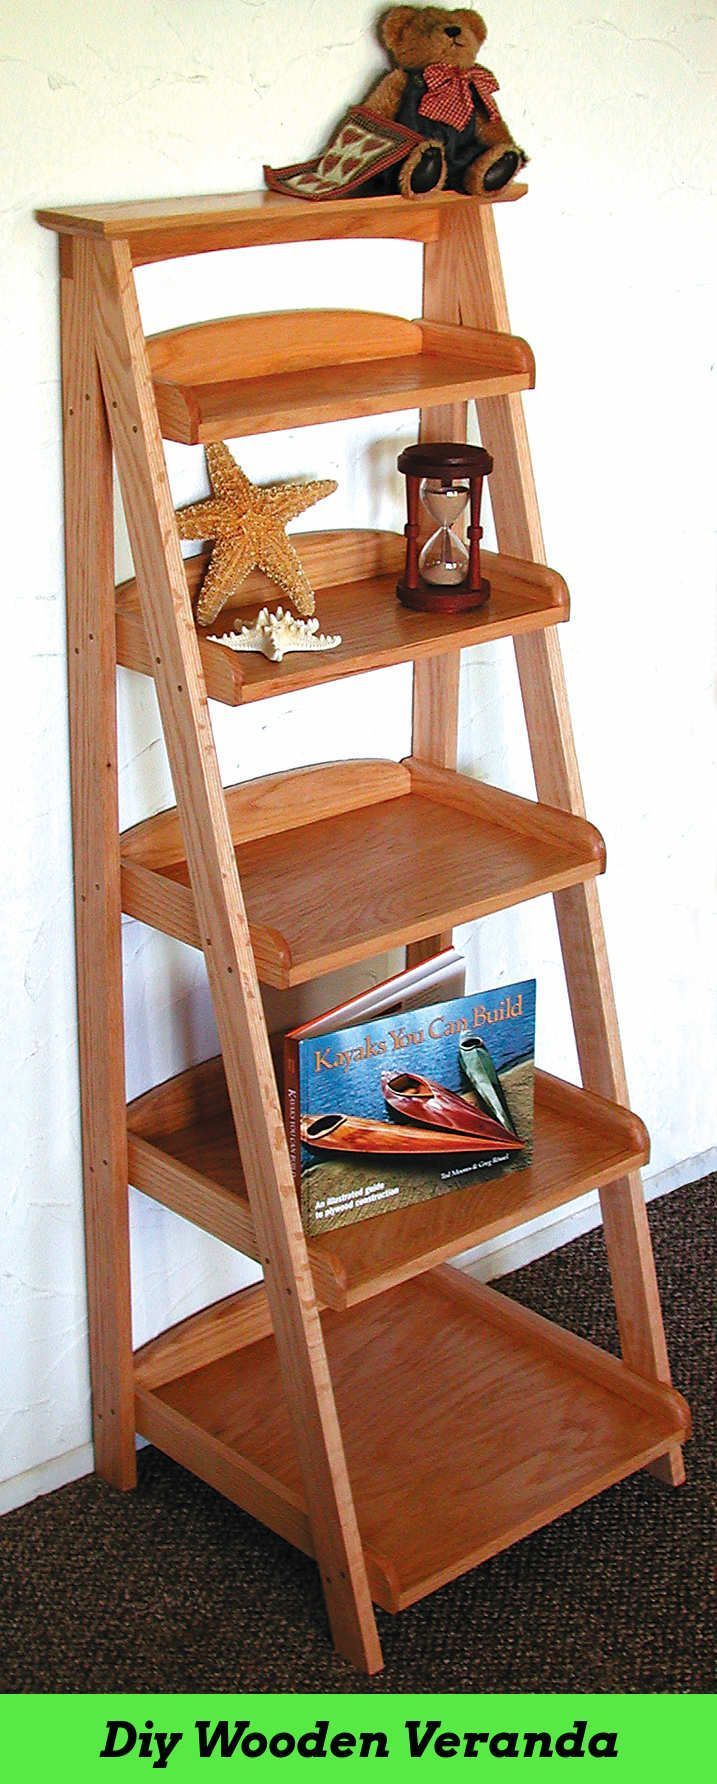 woodworking projects carving woodworkingprojects on useful diy wood project ideas beginner woodworking plans id=68824